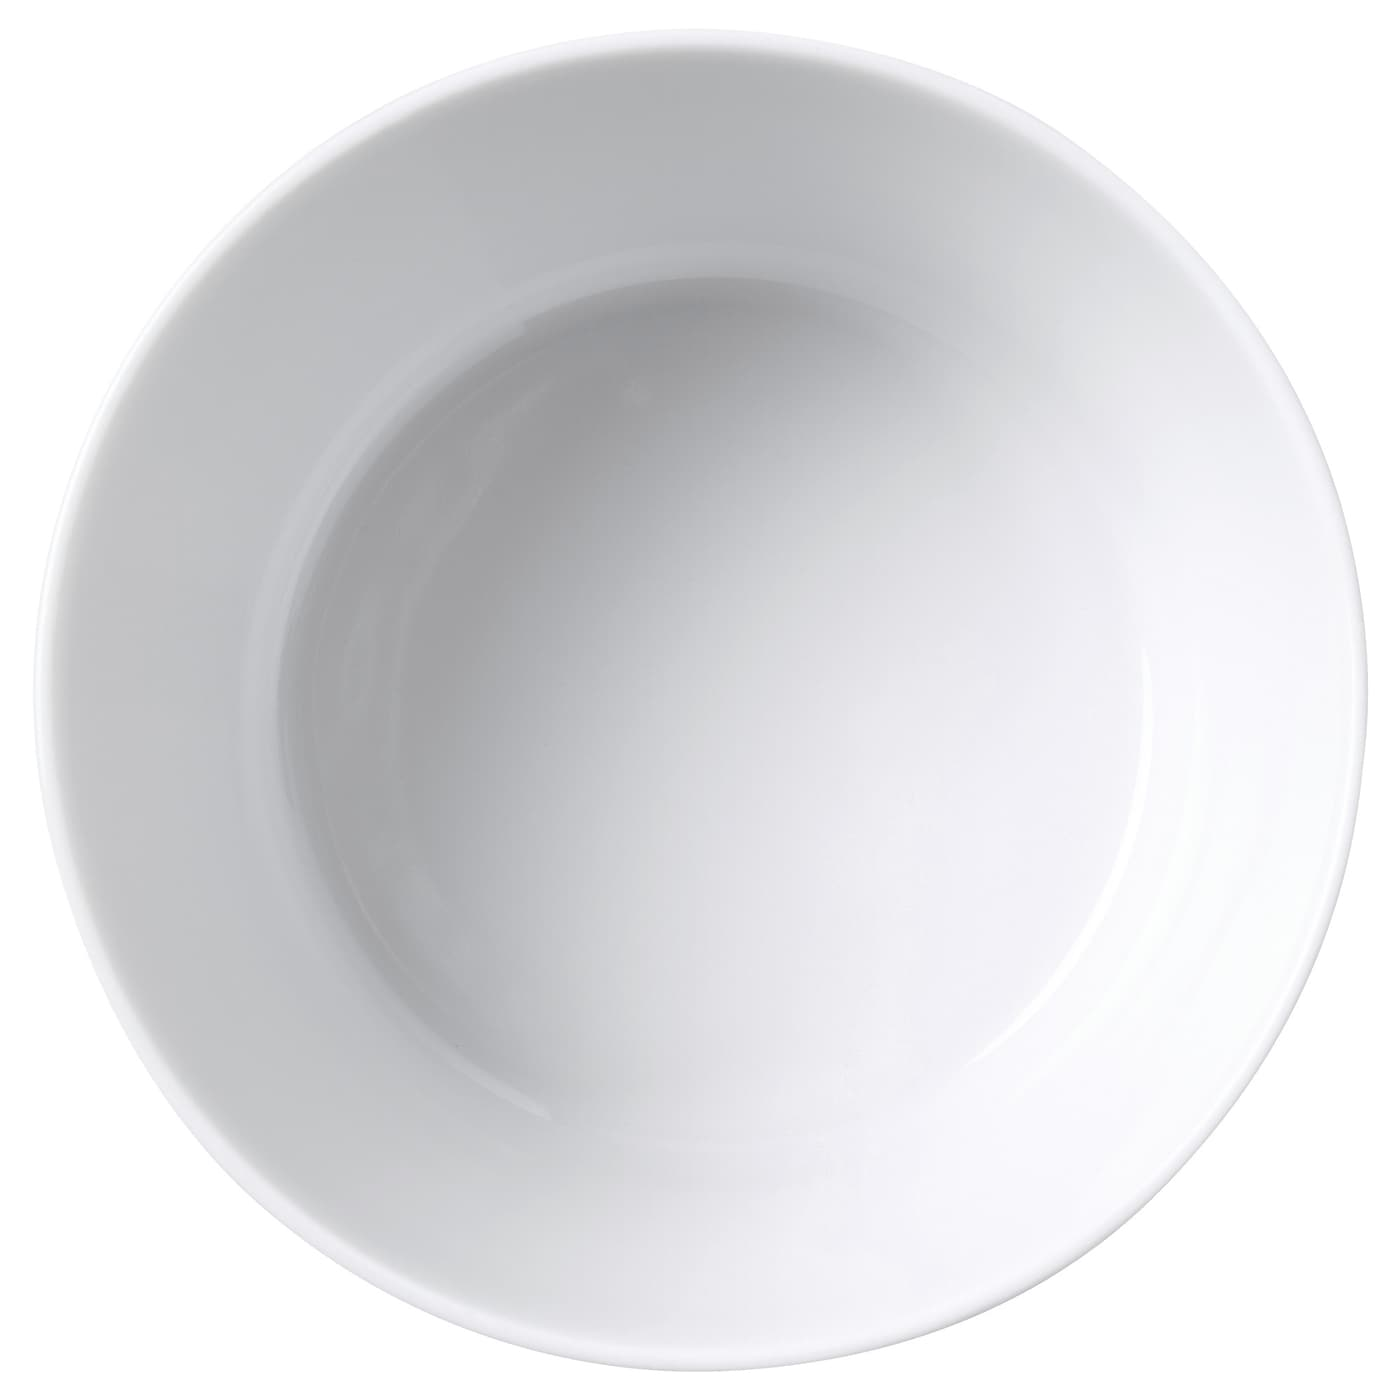 IKEA STUNSIG bowl Made of feldspar porcelain, which makes the bowl impact resistant and durable.